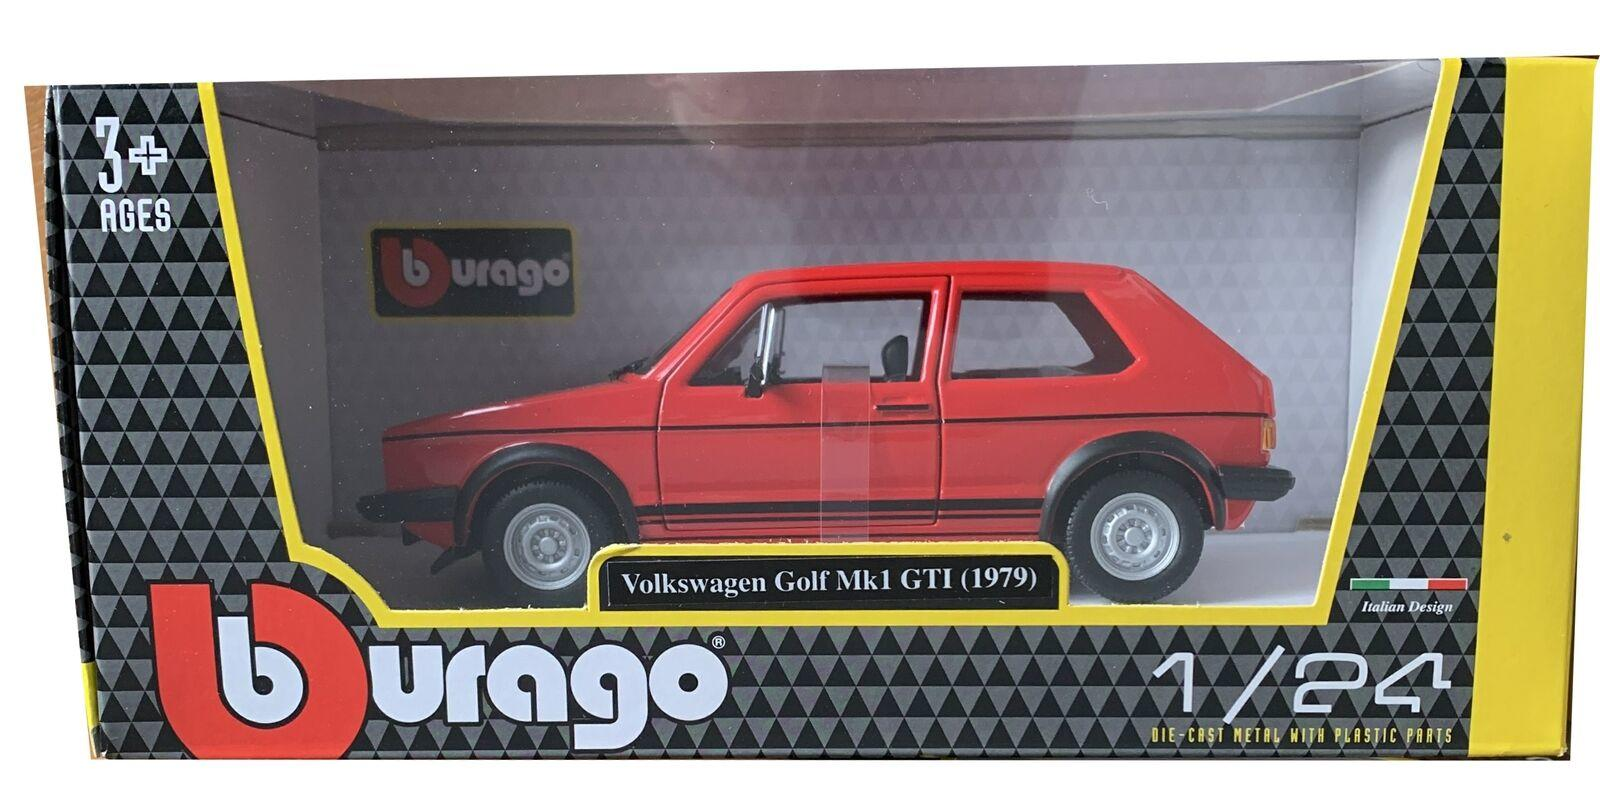 VW Golf GTi mk1 1979 in red 1:24 scale model from Bburago